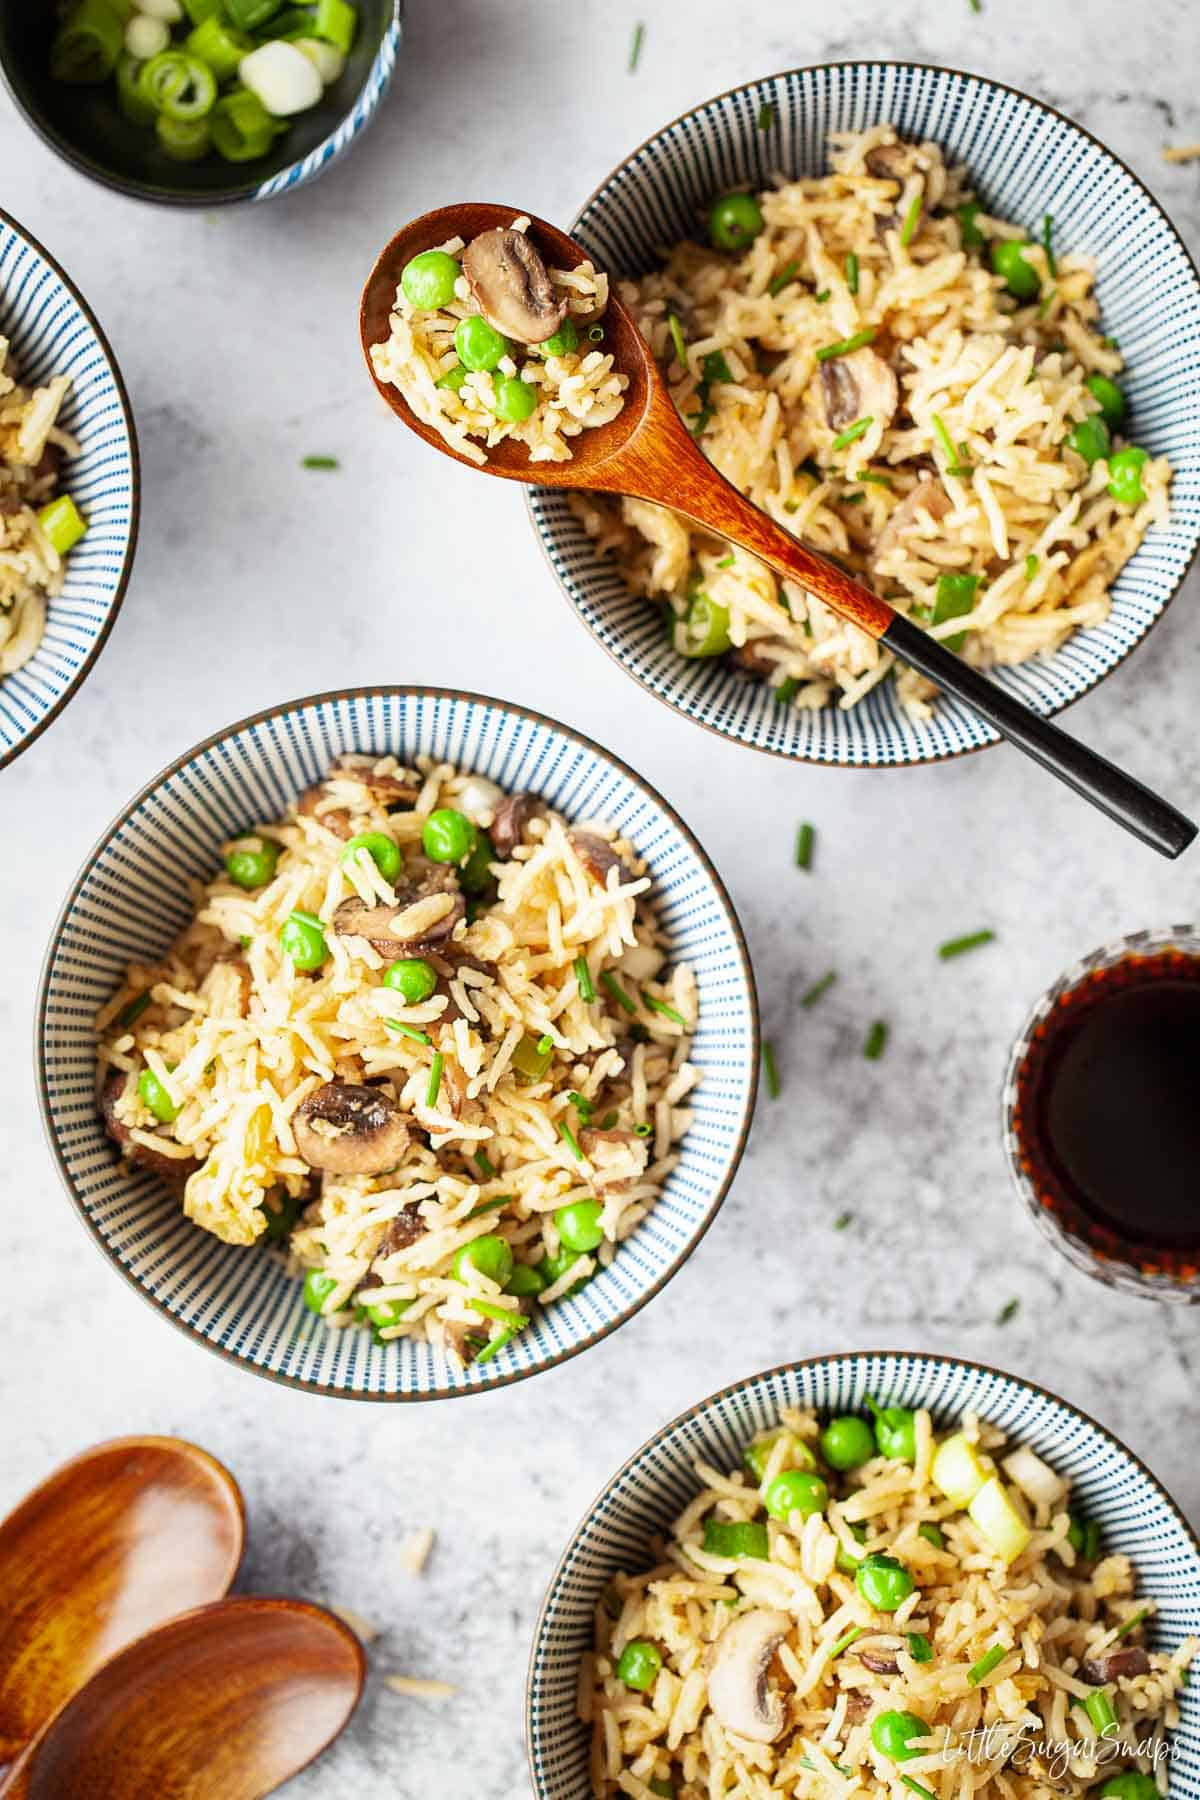 Three bowls of mushroom fried rice, one with a spoon across it.